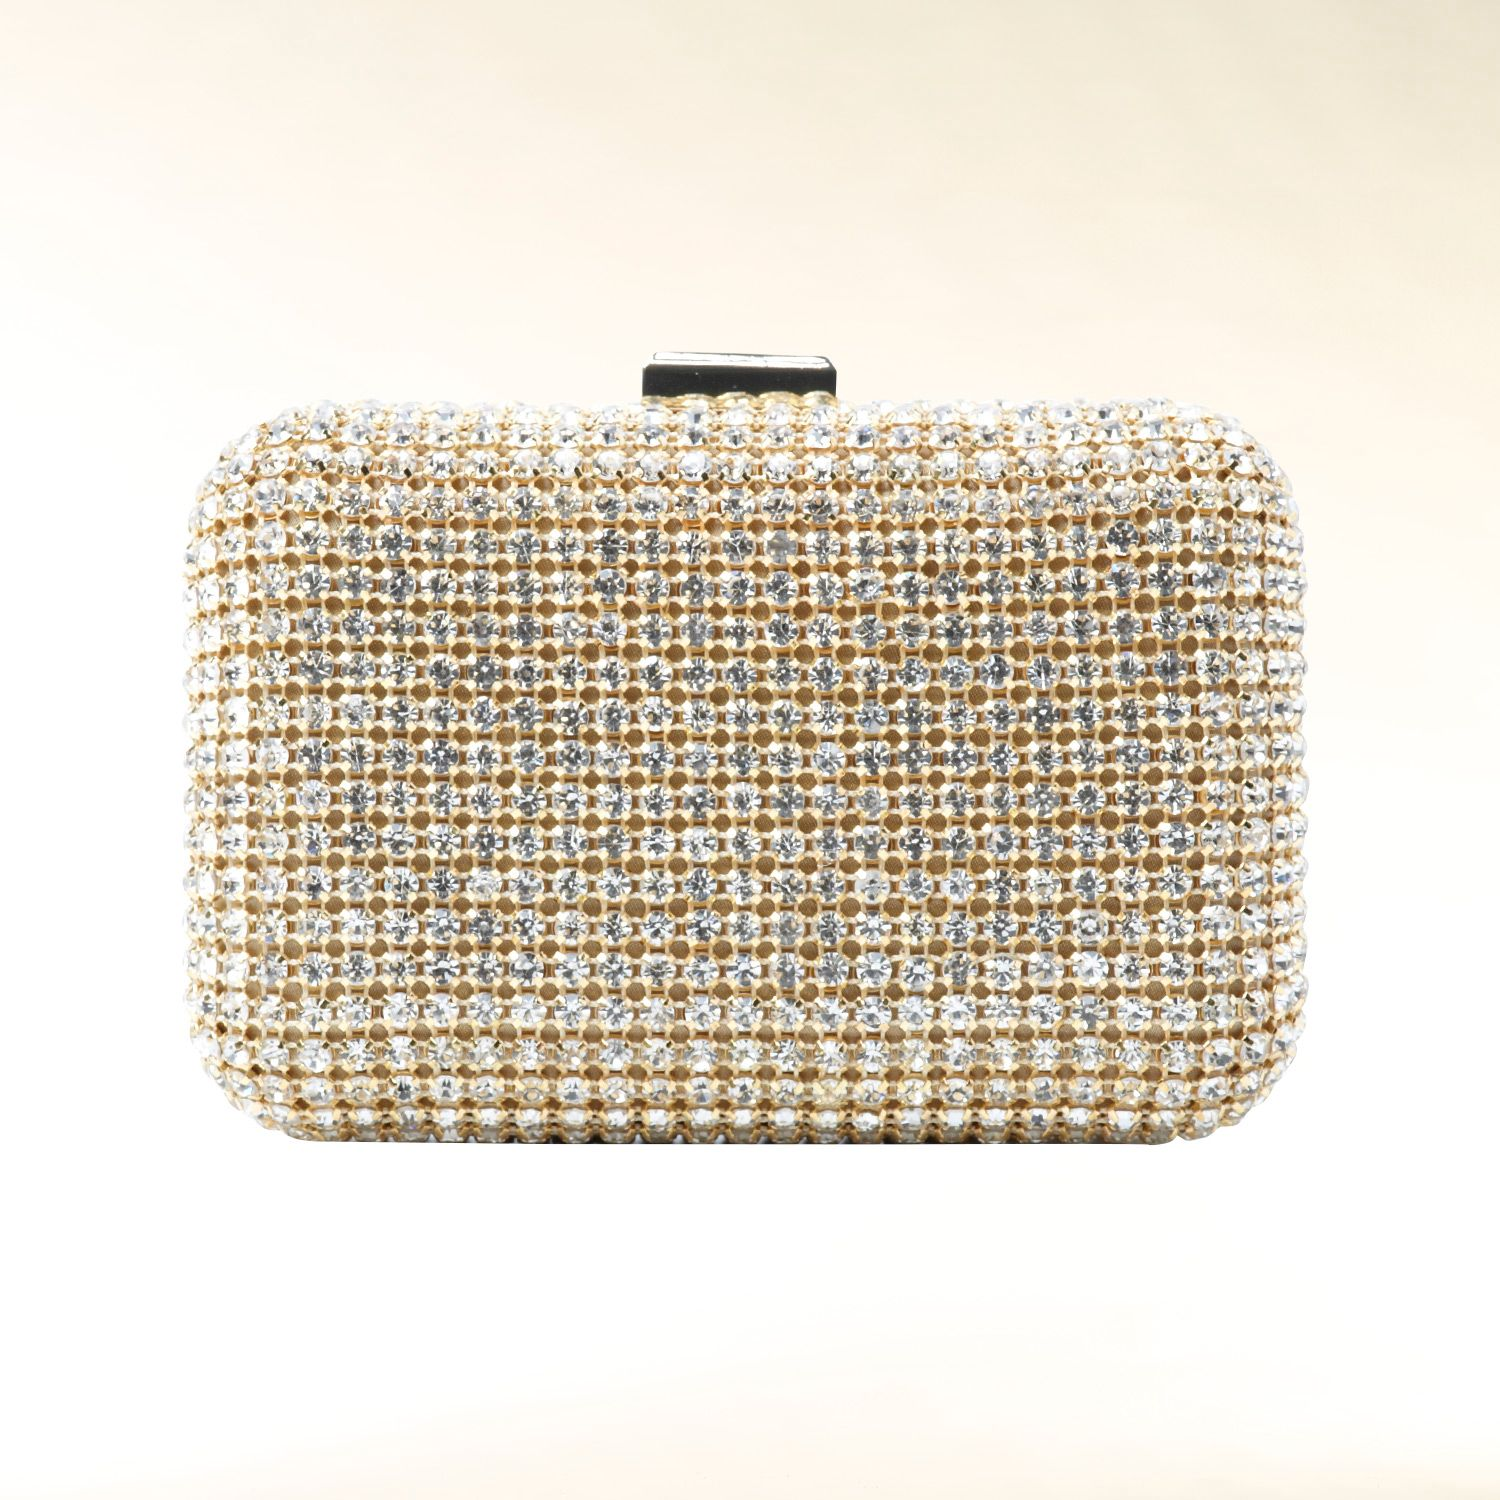 Diamante clutch purse